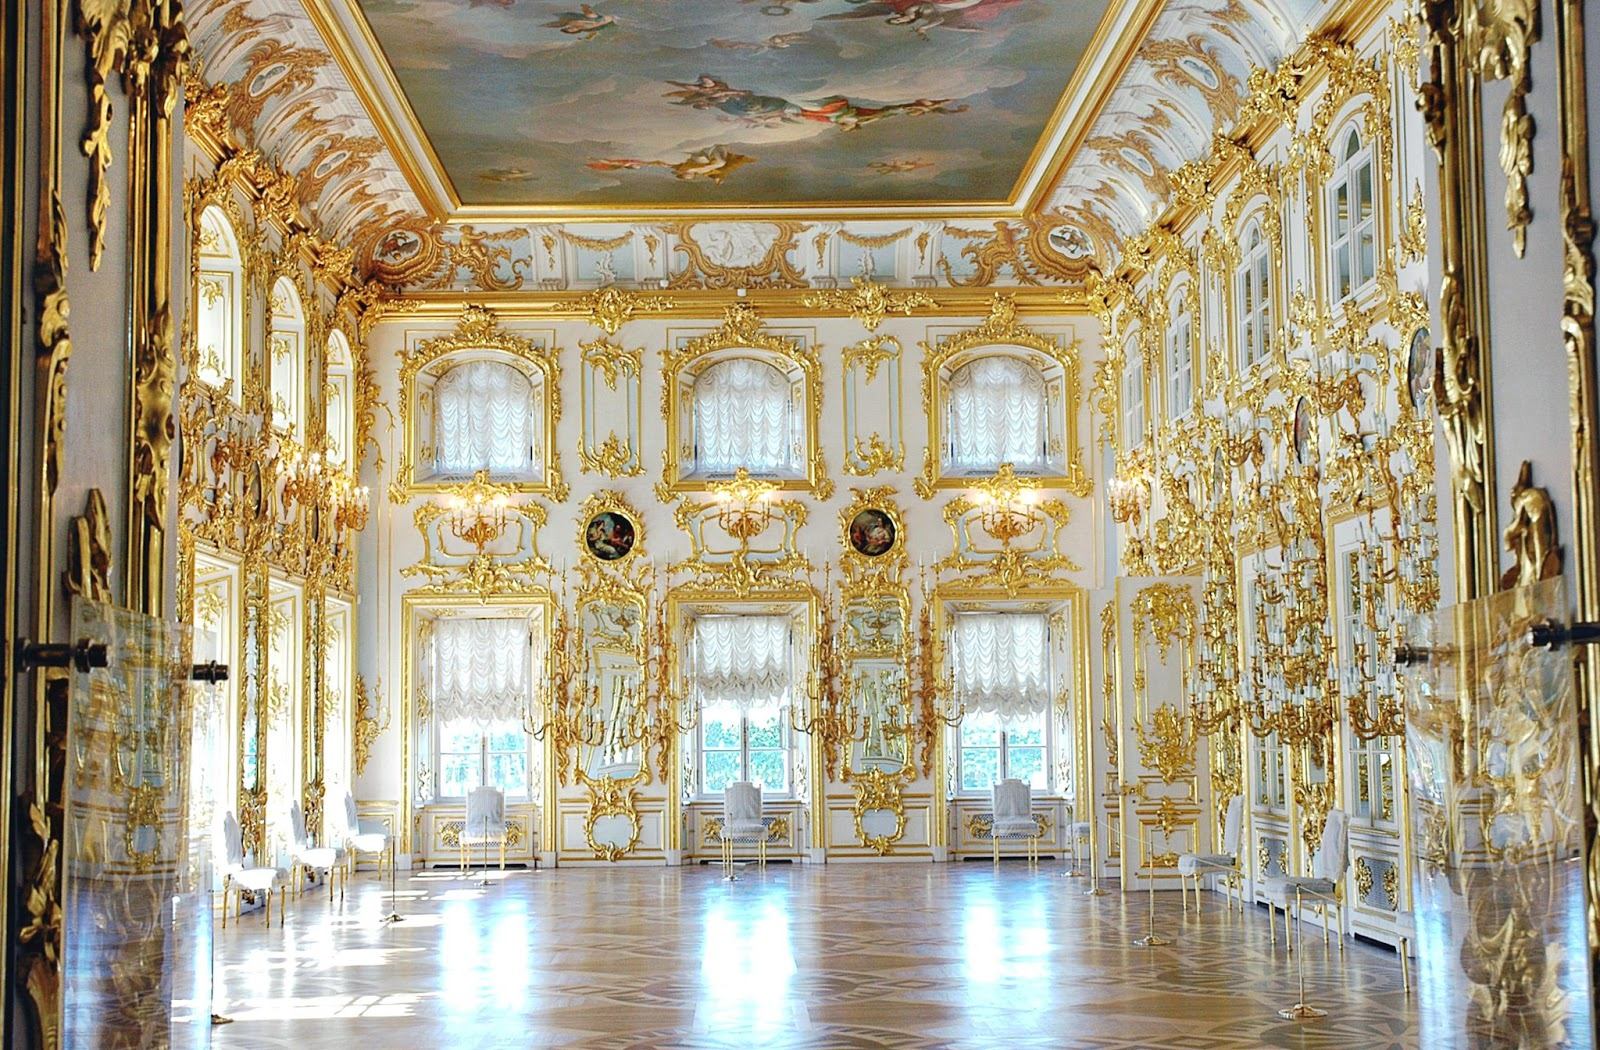 Peterhof Russia  City pictures : ... voyage to Peterhof near St. Petersburg, Russia, Europe